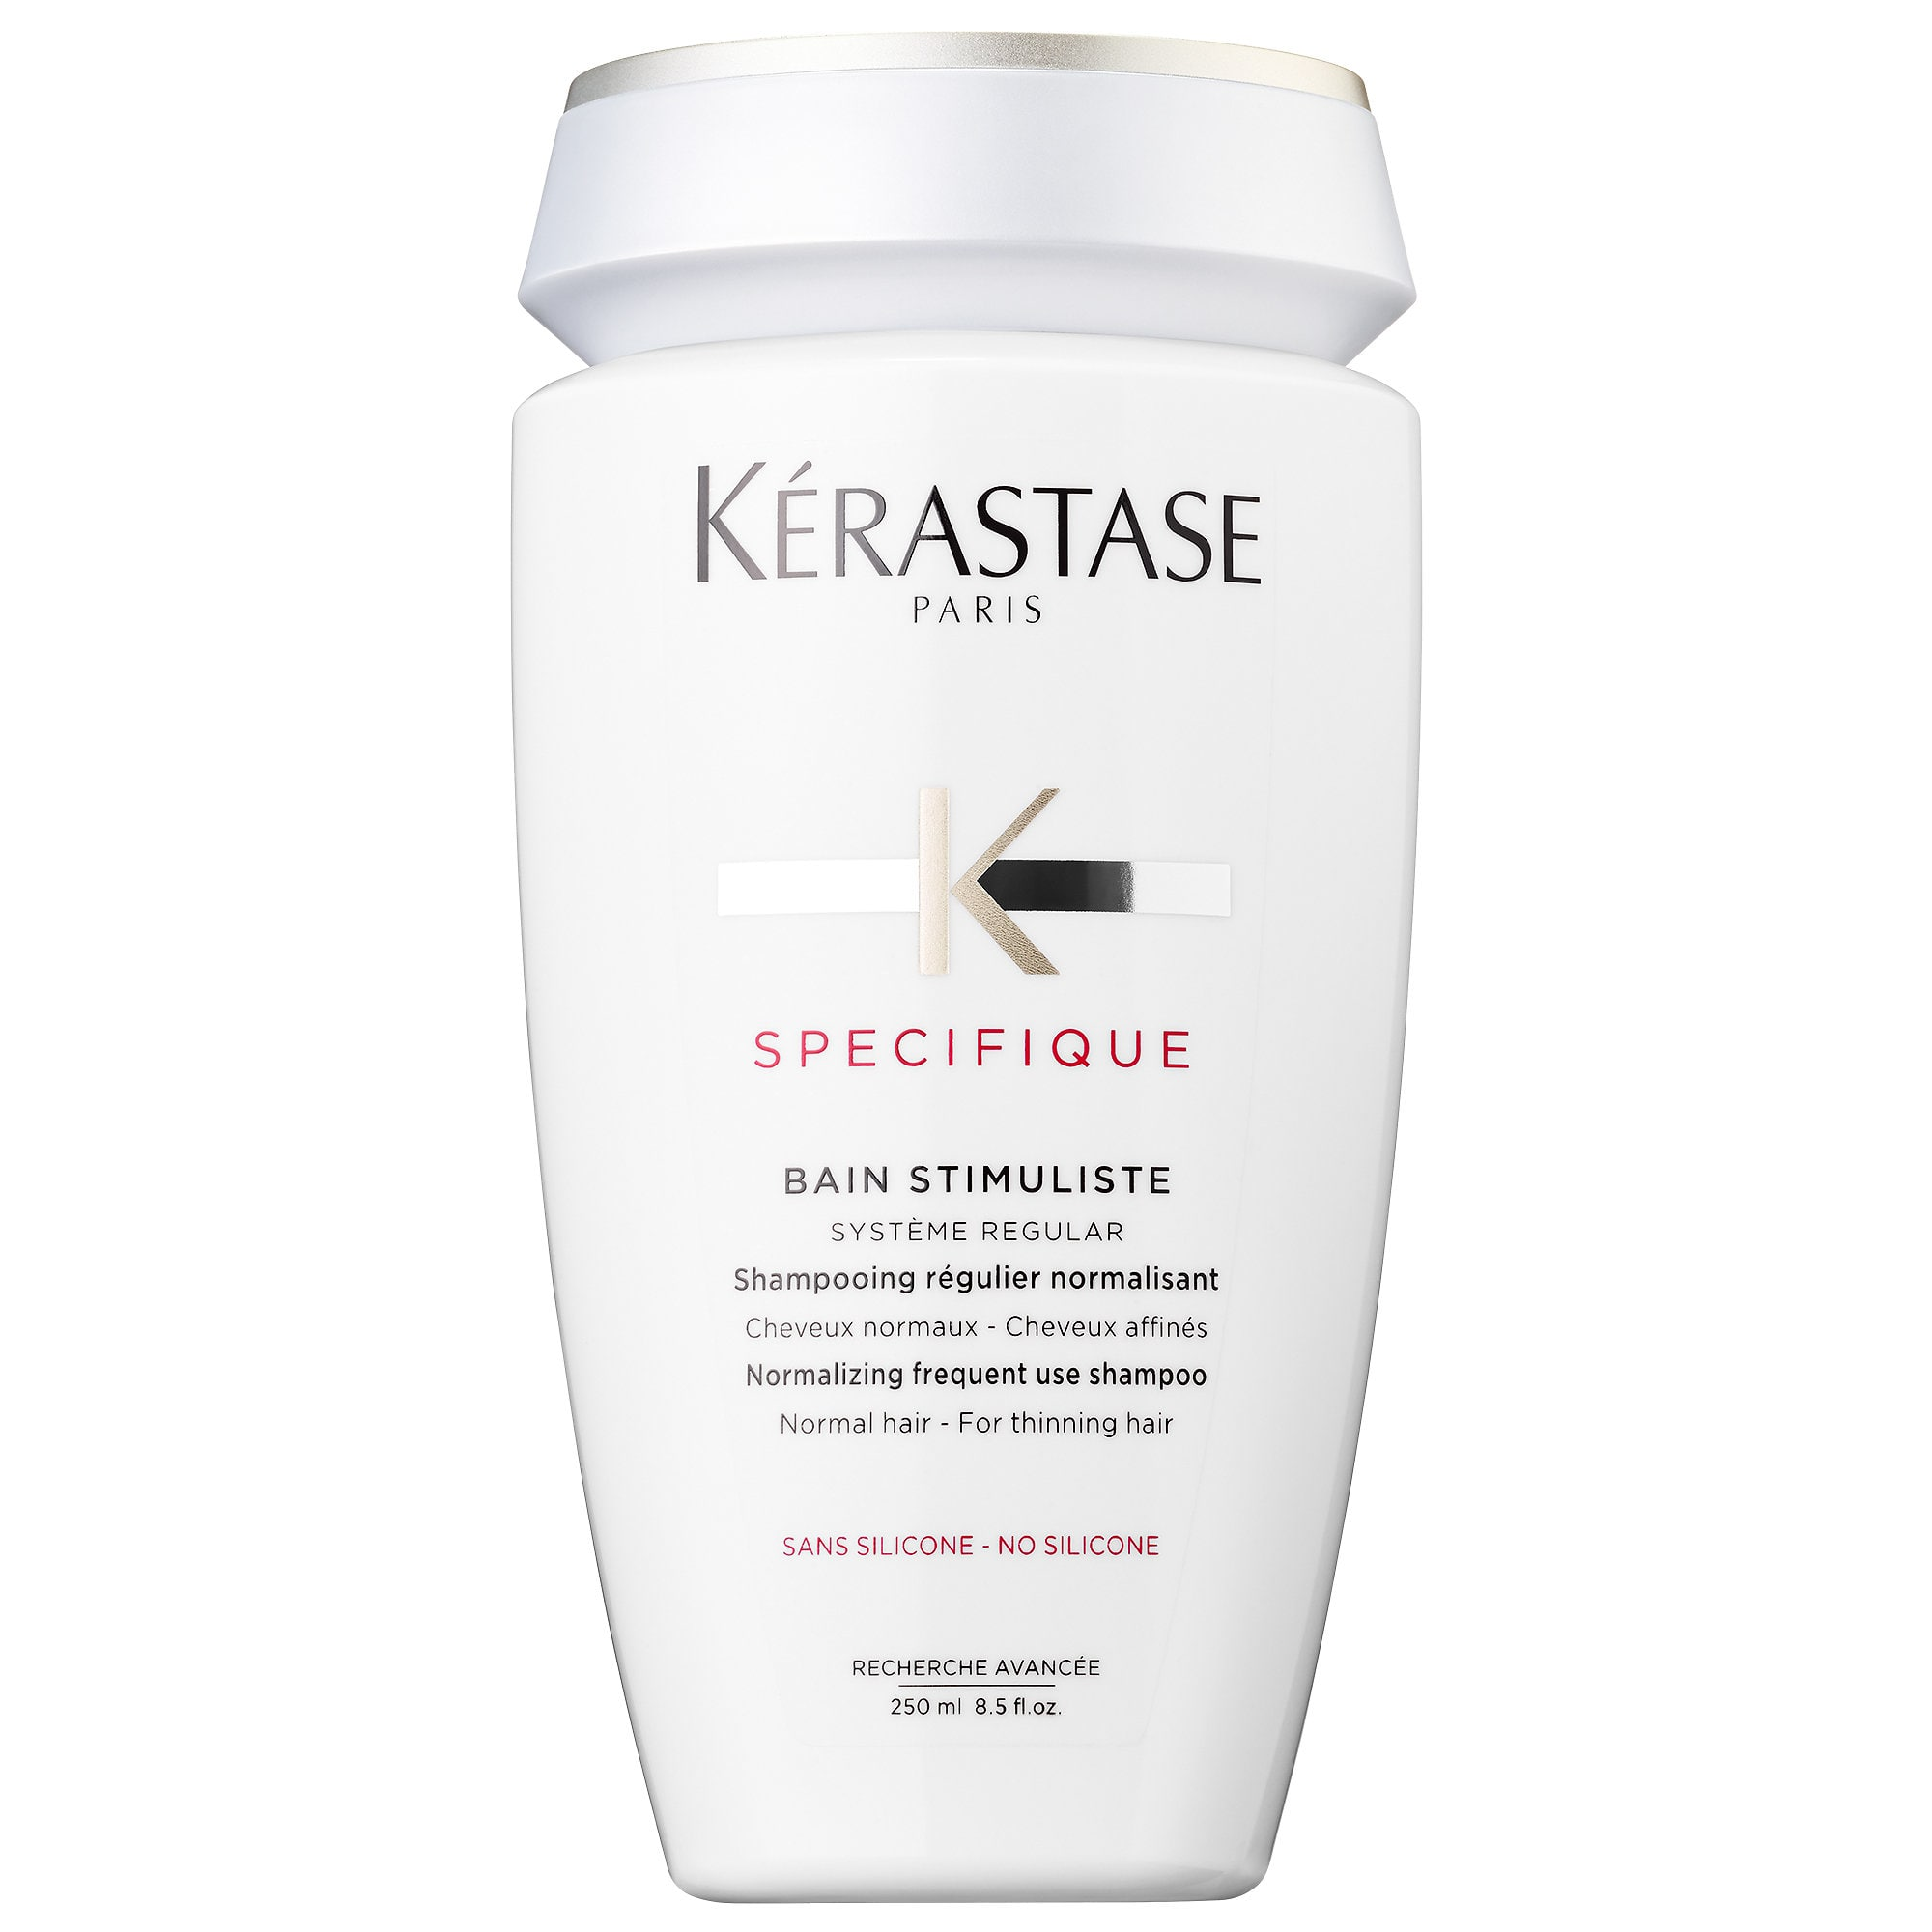 Specifique Shampoo for Thinning Hair